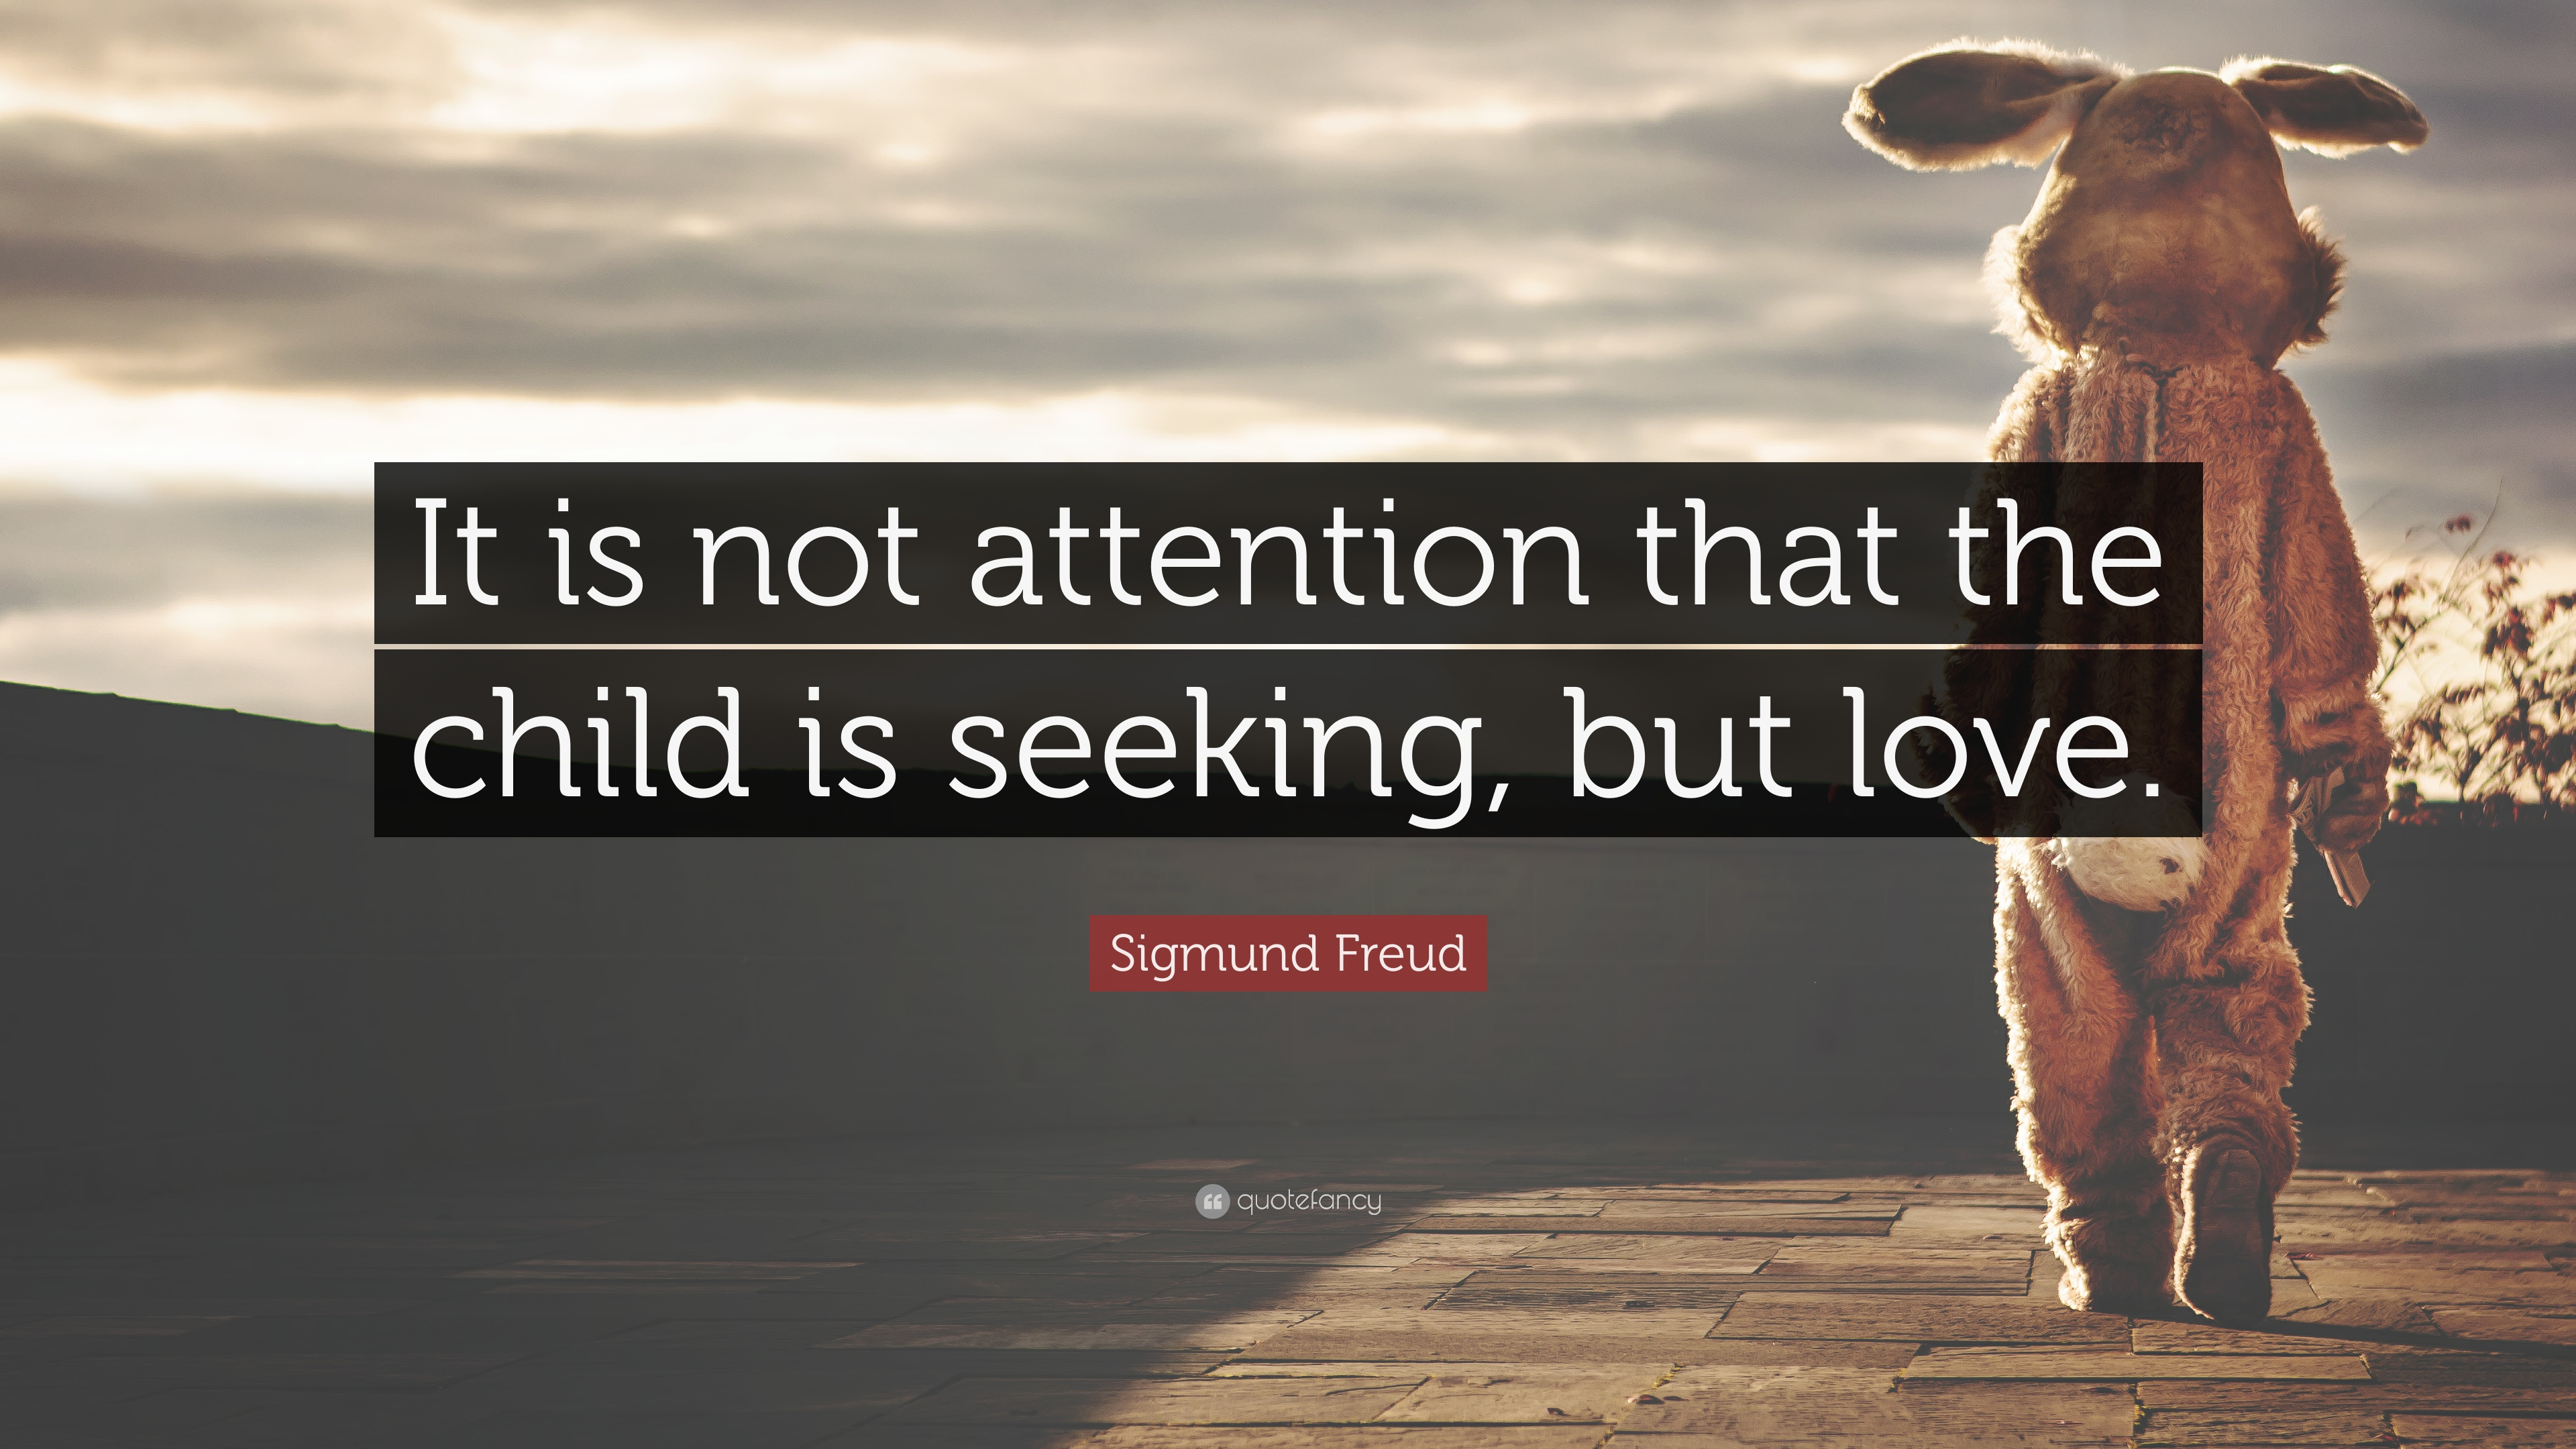 Quotes About The Love Of Children Quotes About Children 40 Wallpapers  Quotefancy